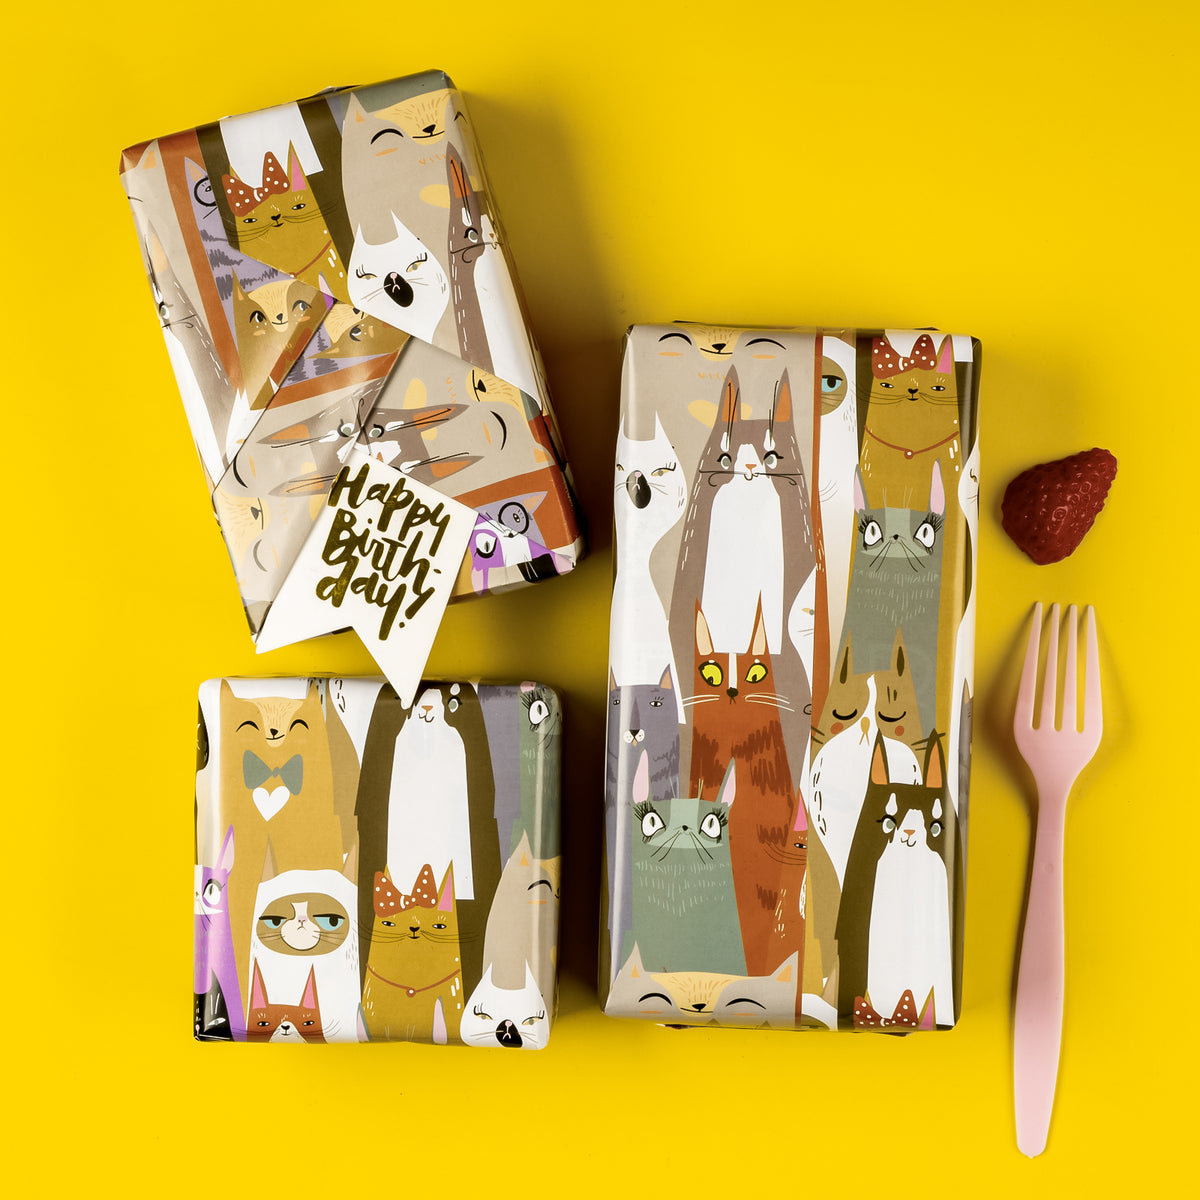 Wrapaholic Wrapping Paper Sheet - Folded Flat - 3 sheets - Cat Design(22.6 sq. ft.ttl.) - 27.5 inch X 39.4 inch Per Sheet